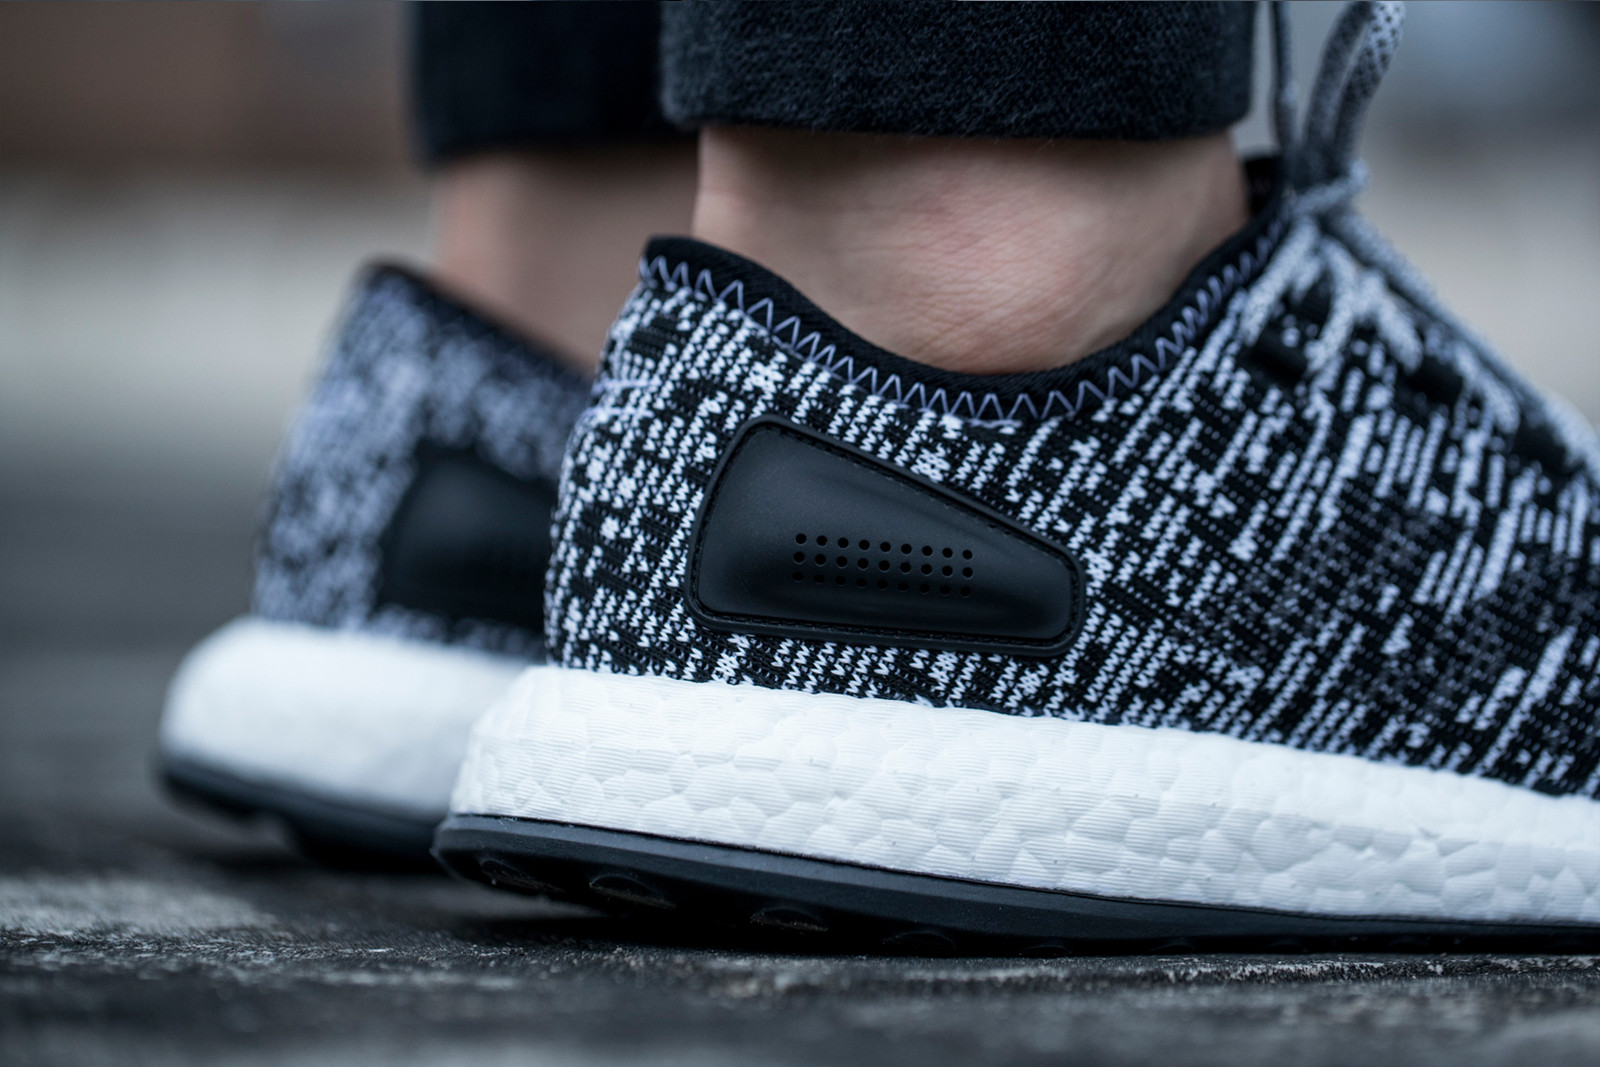 What Makes the New PureBOOST Different From Other BOOST Models ... dc995c899